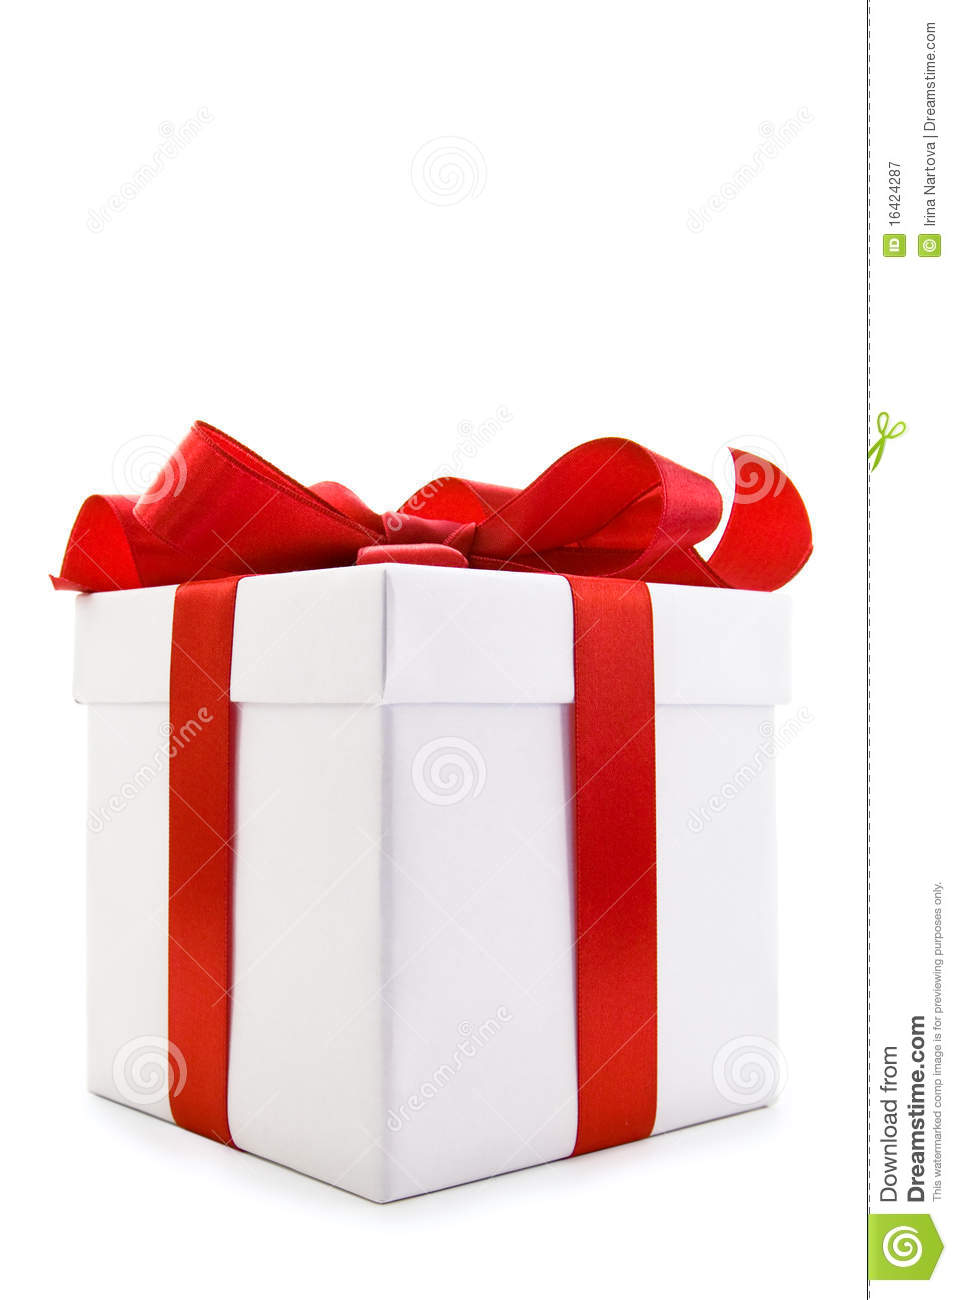 White gift box with red satin ribbon bow royalty free